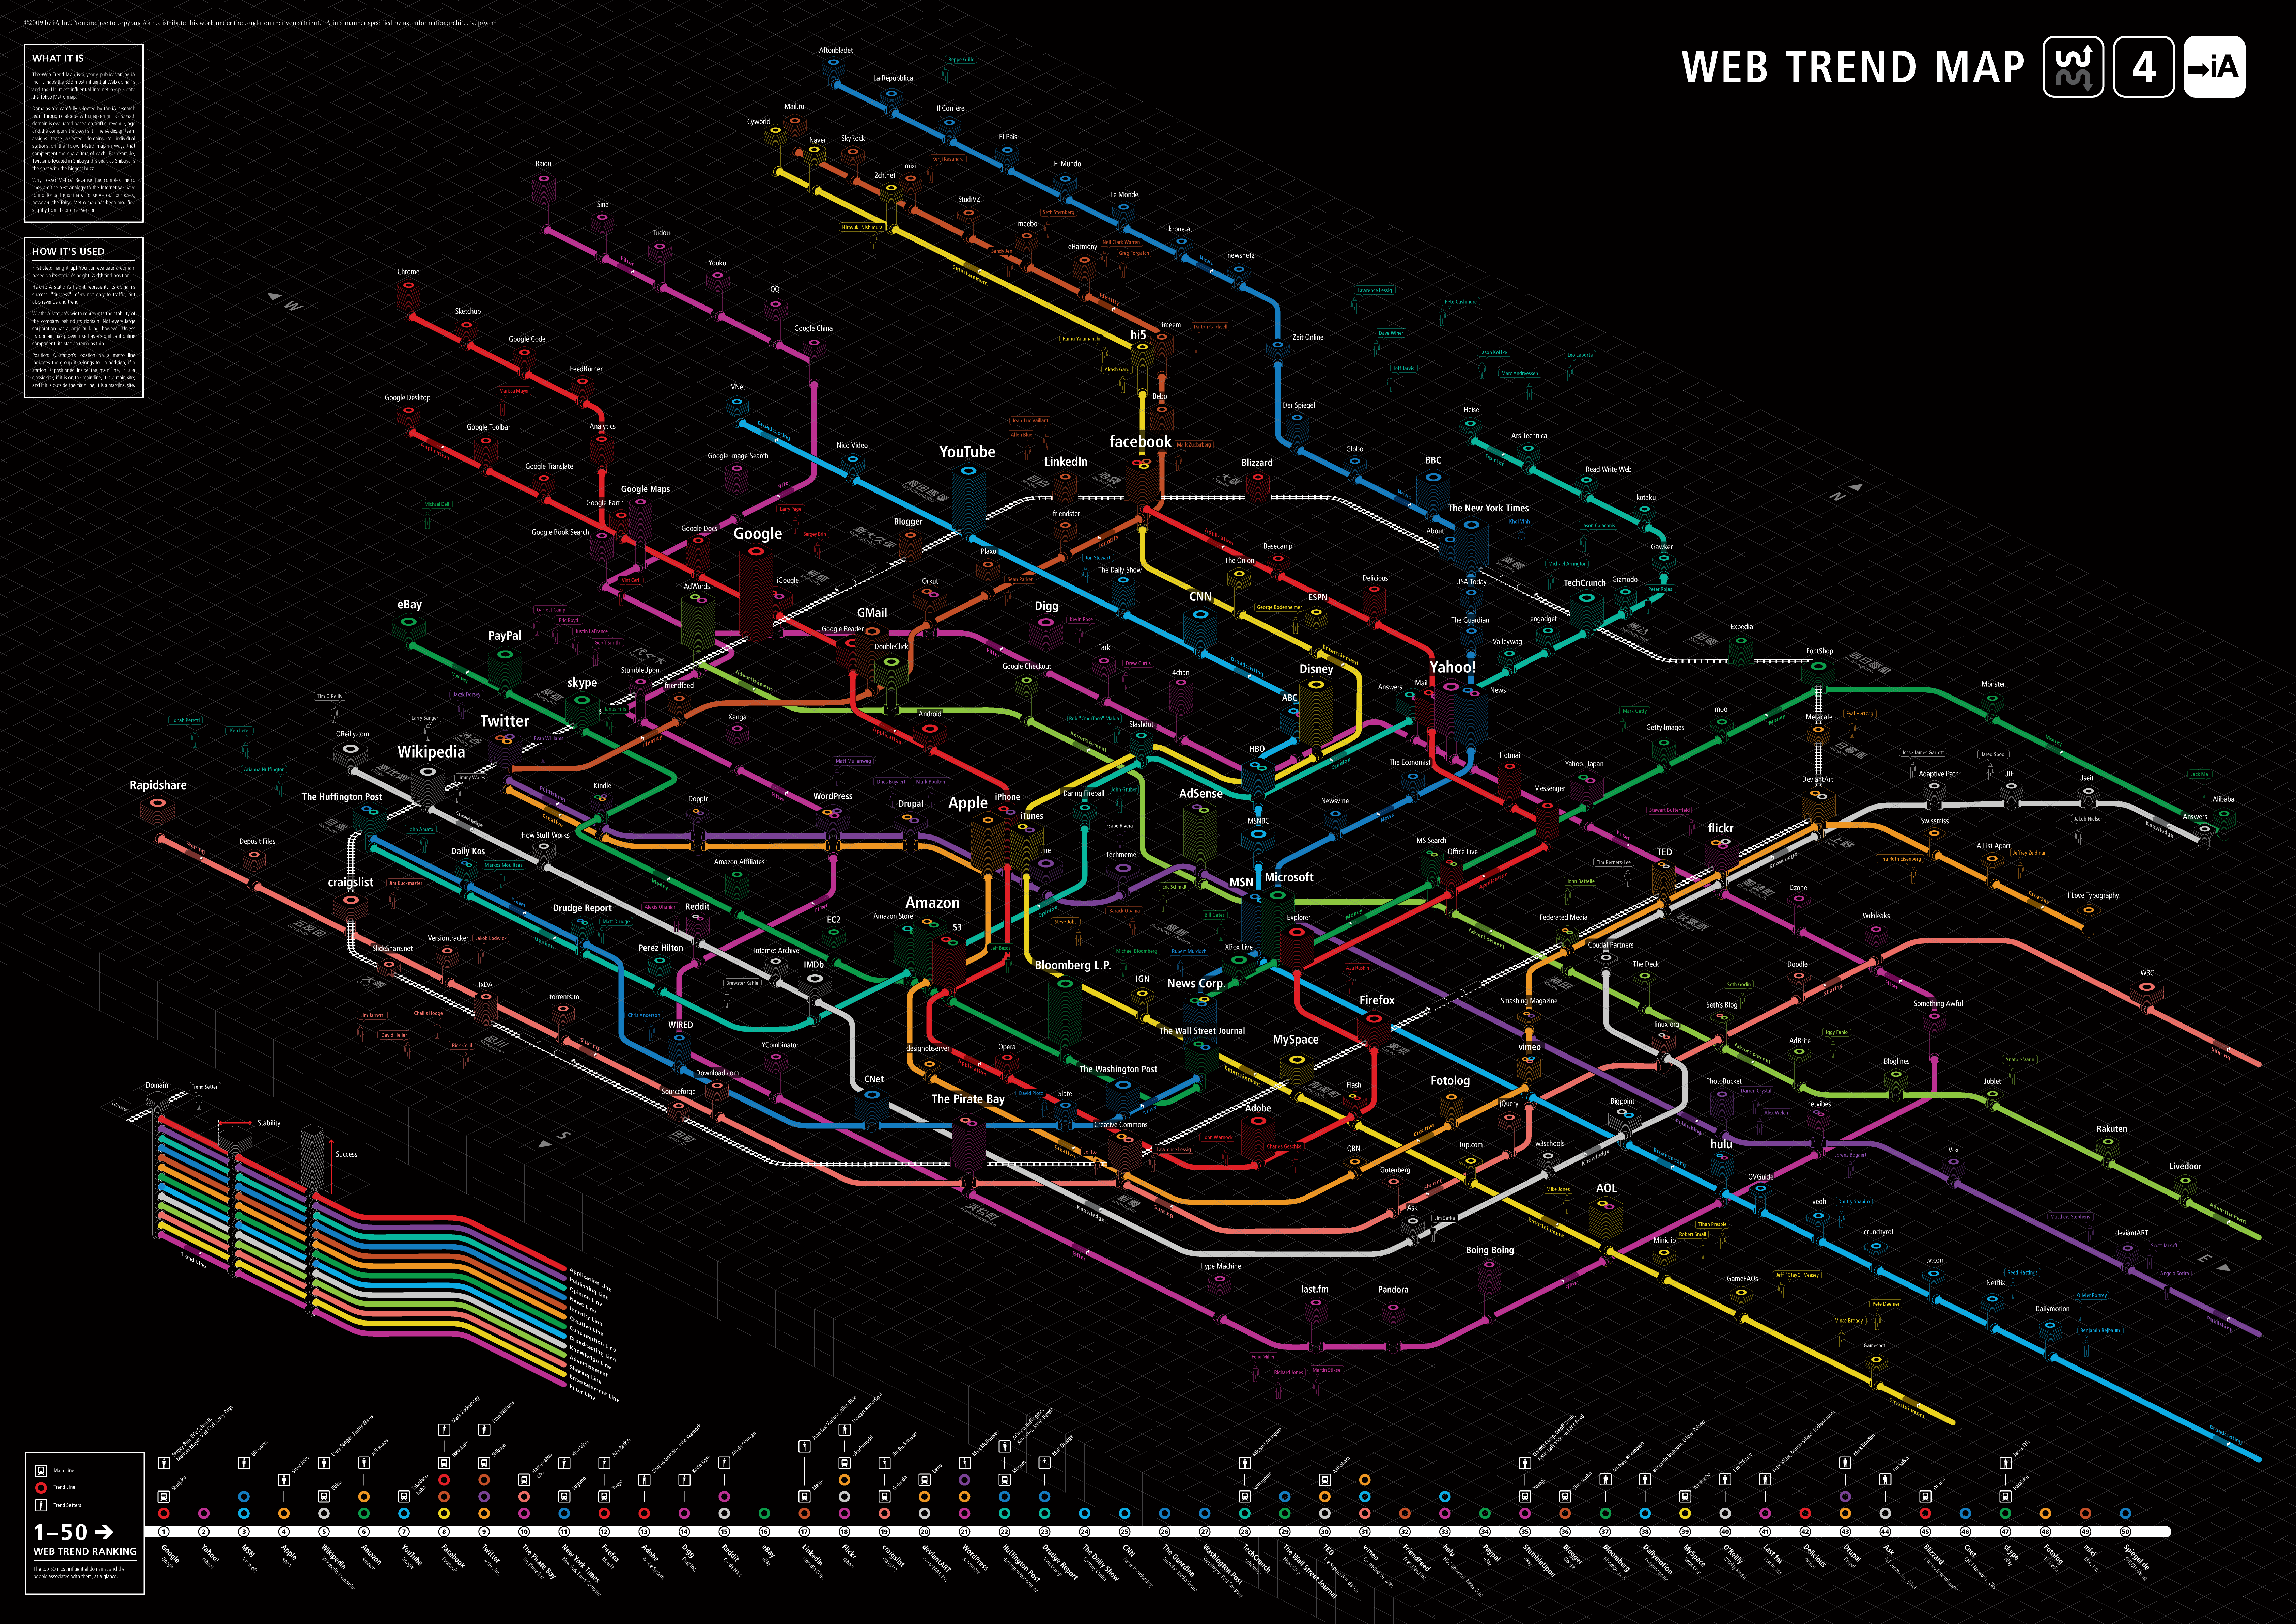 Web Trend Map from iA